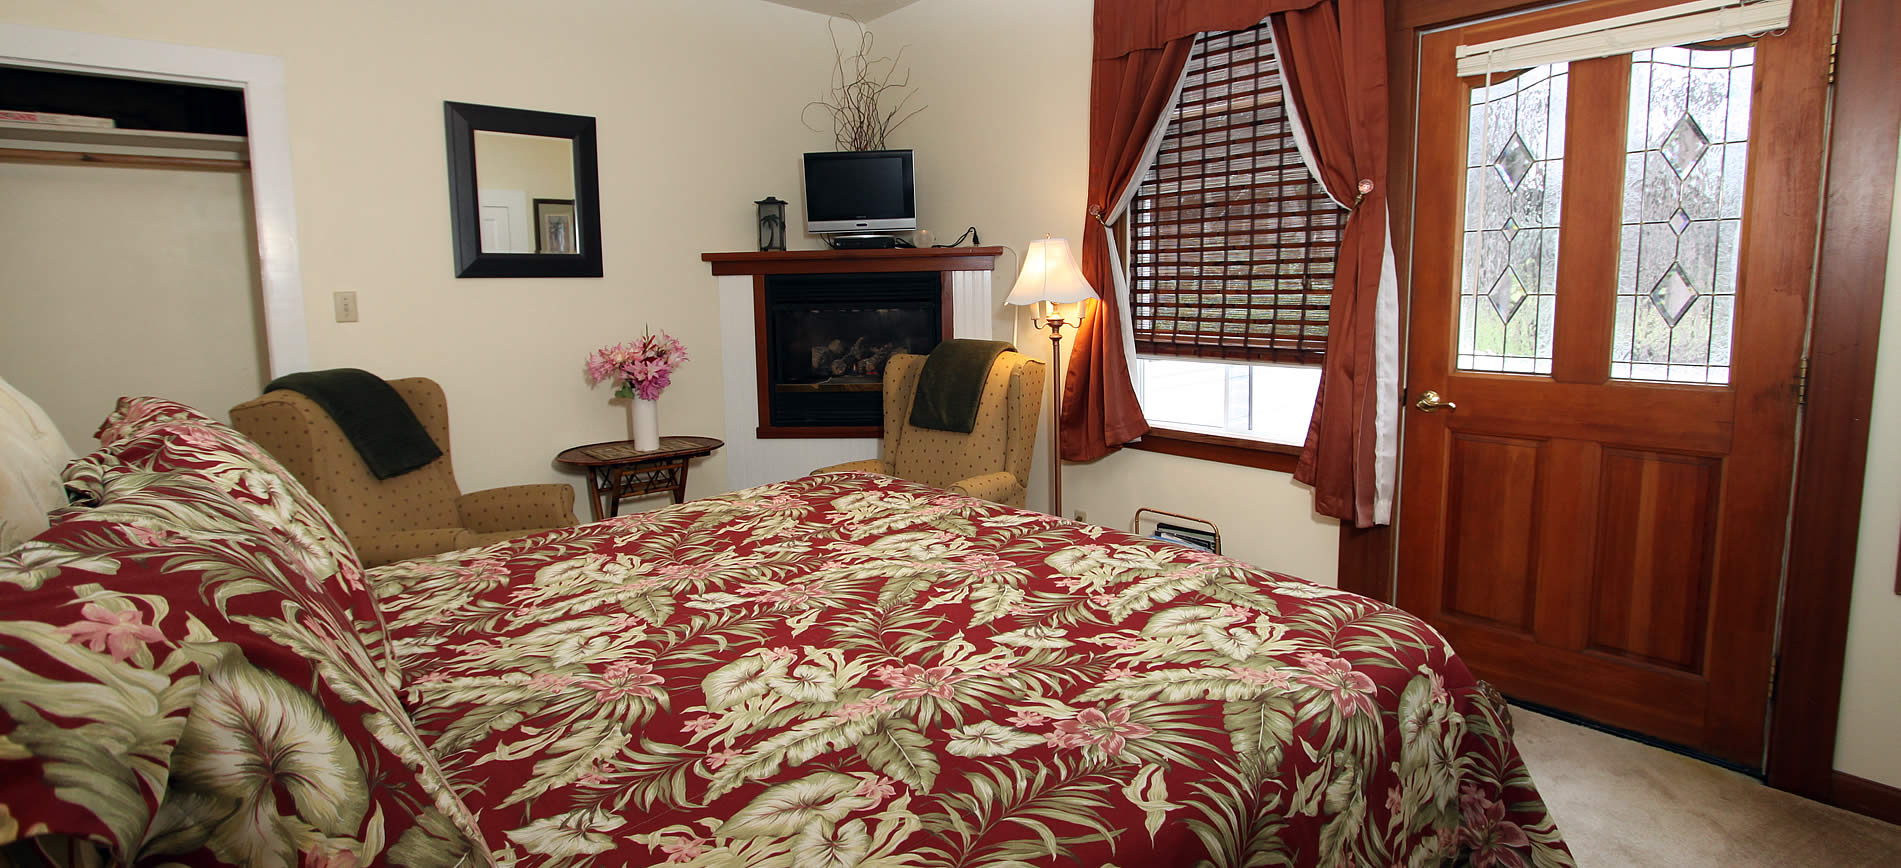 ridgeview room with bed and chairs